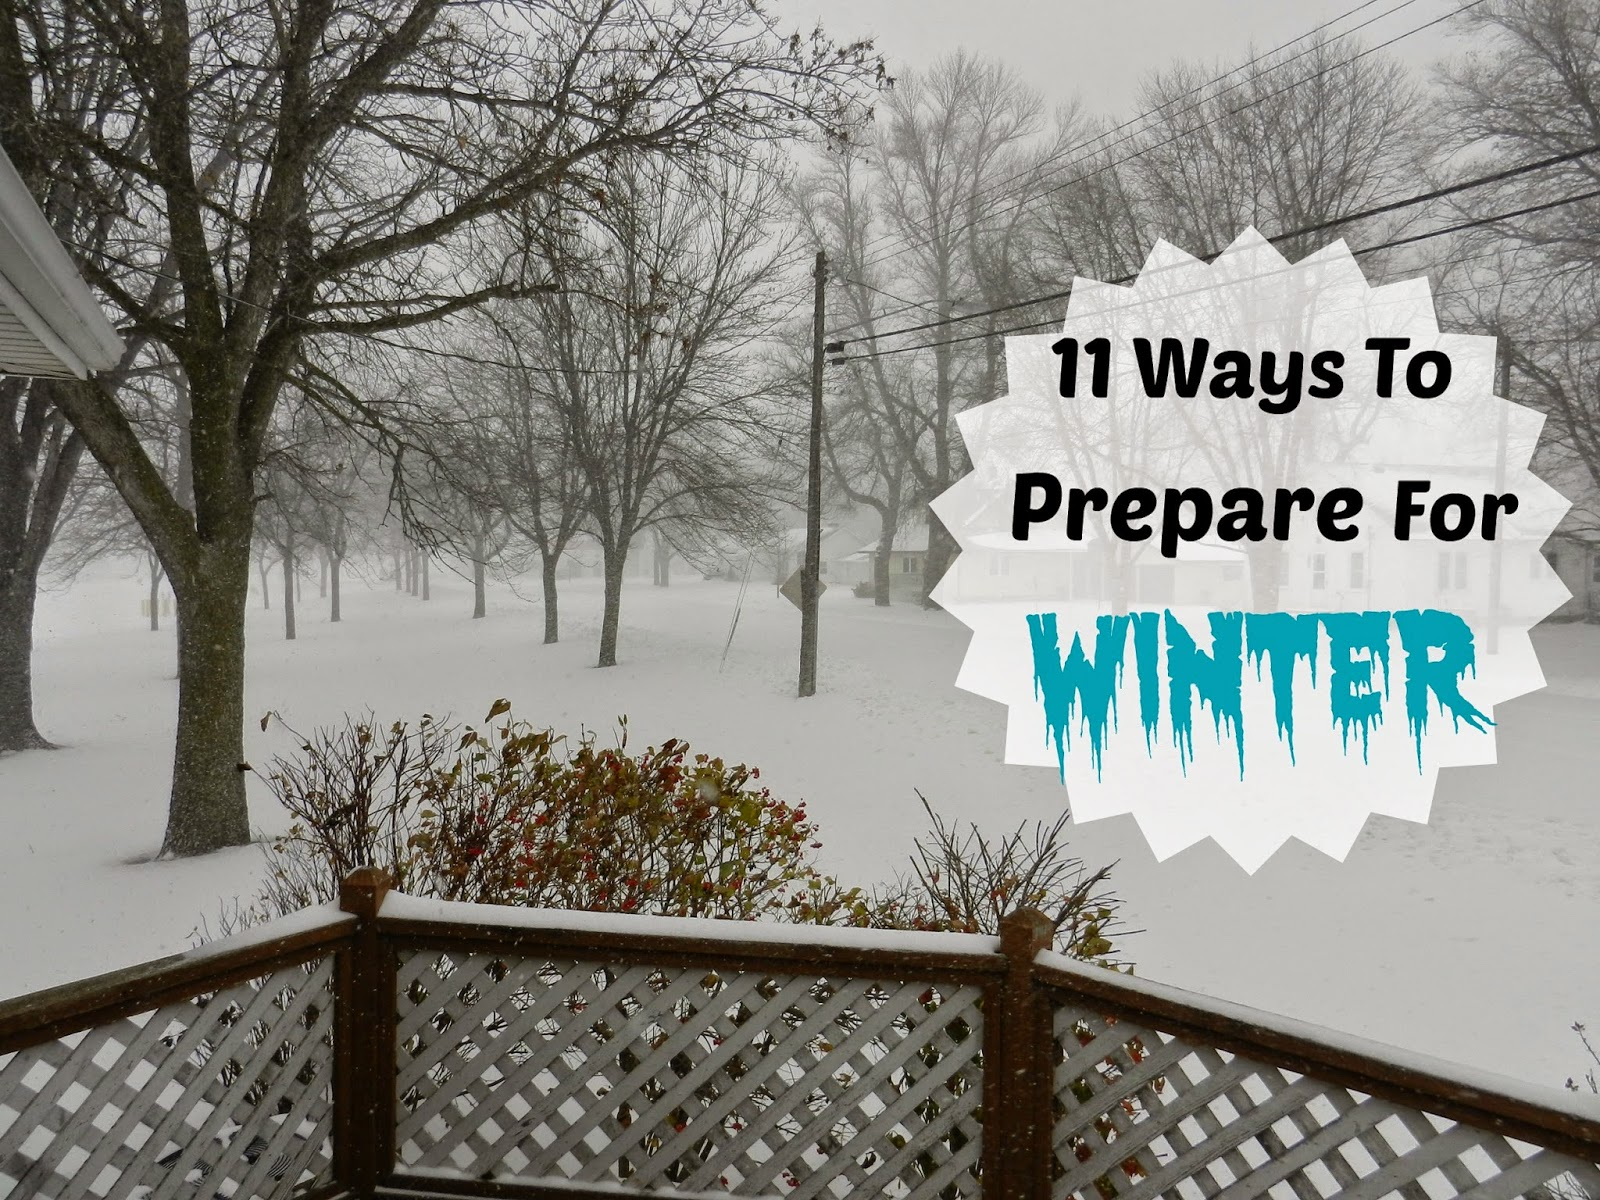 11 Ways to Prepare For Winter